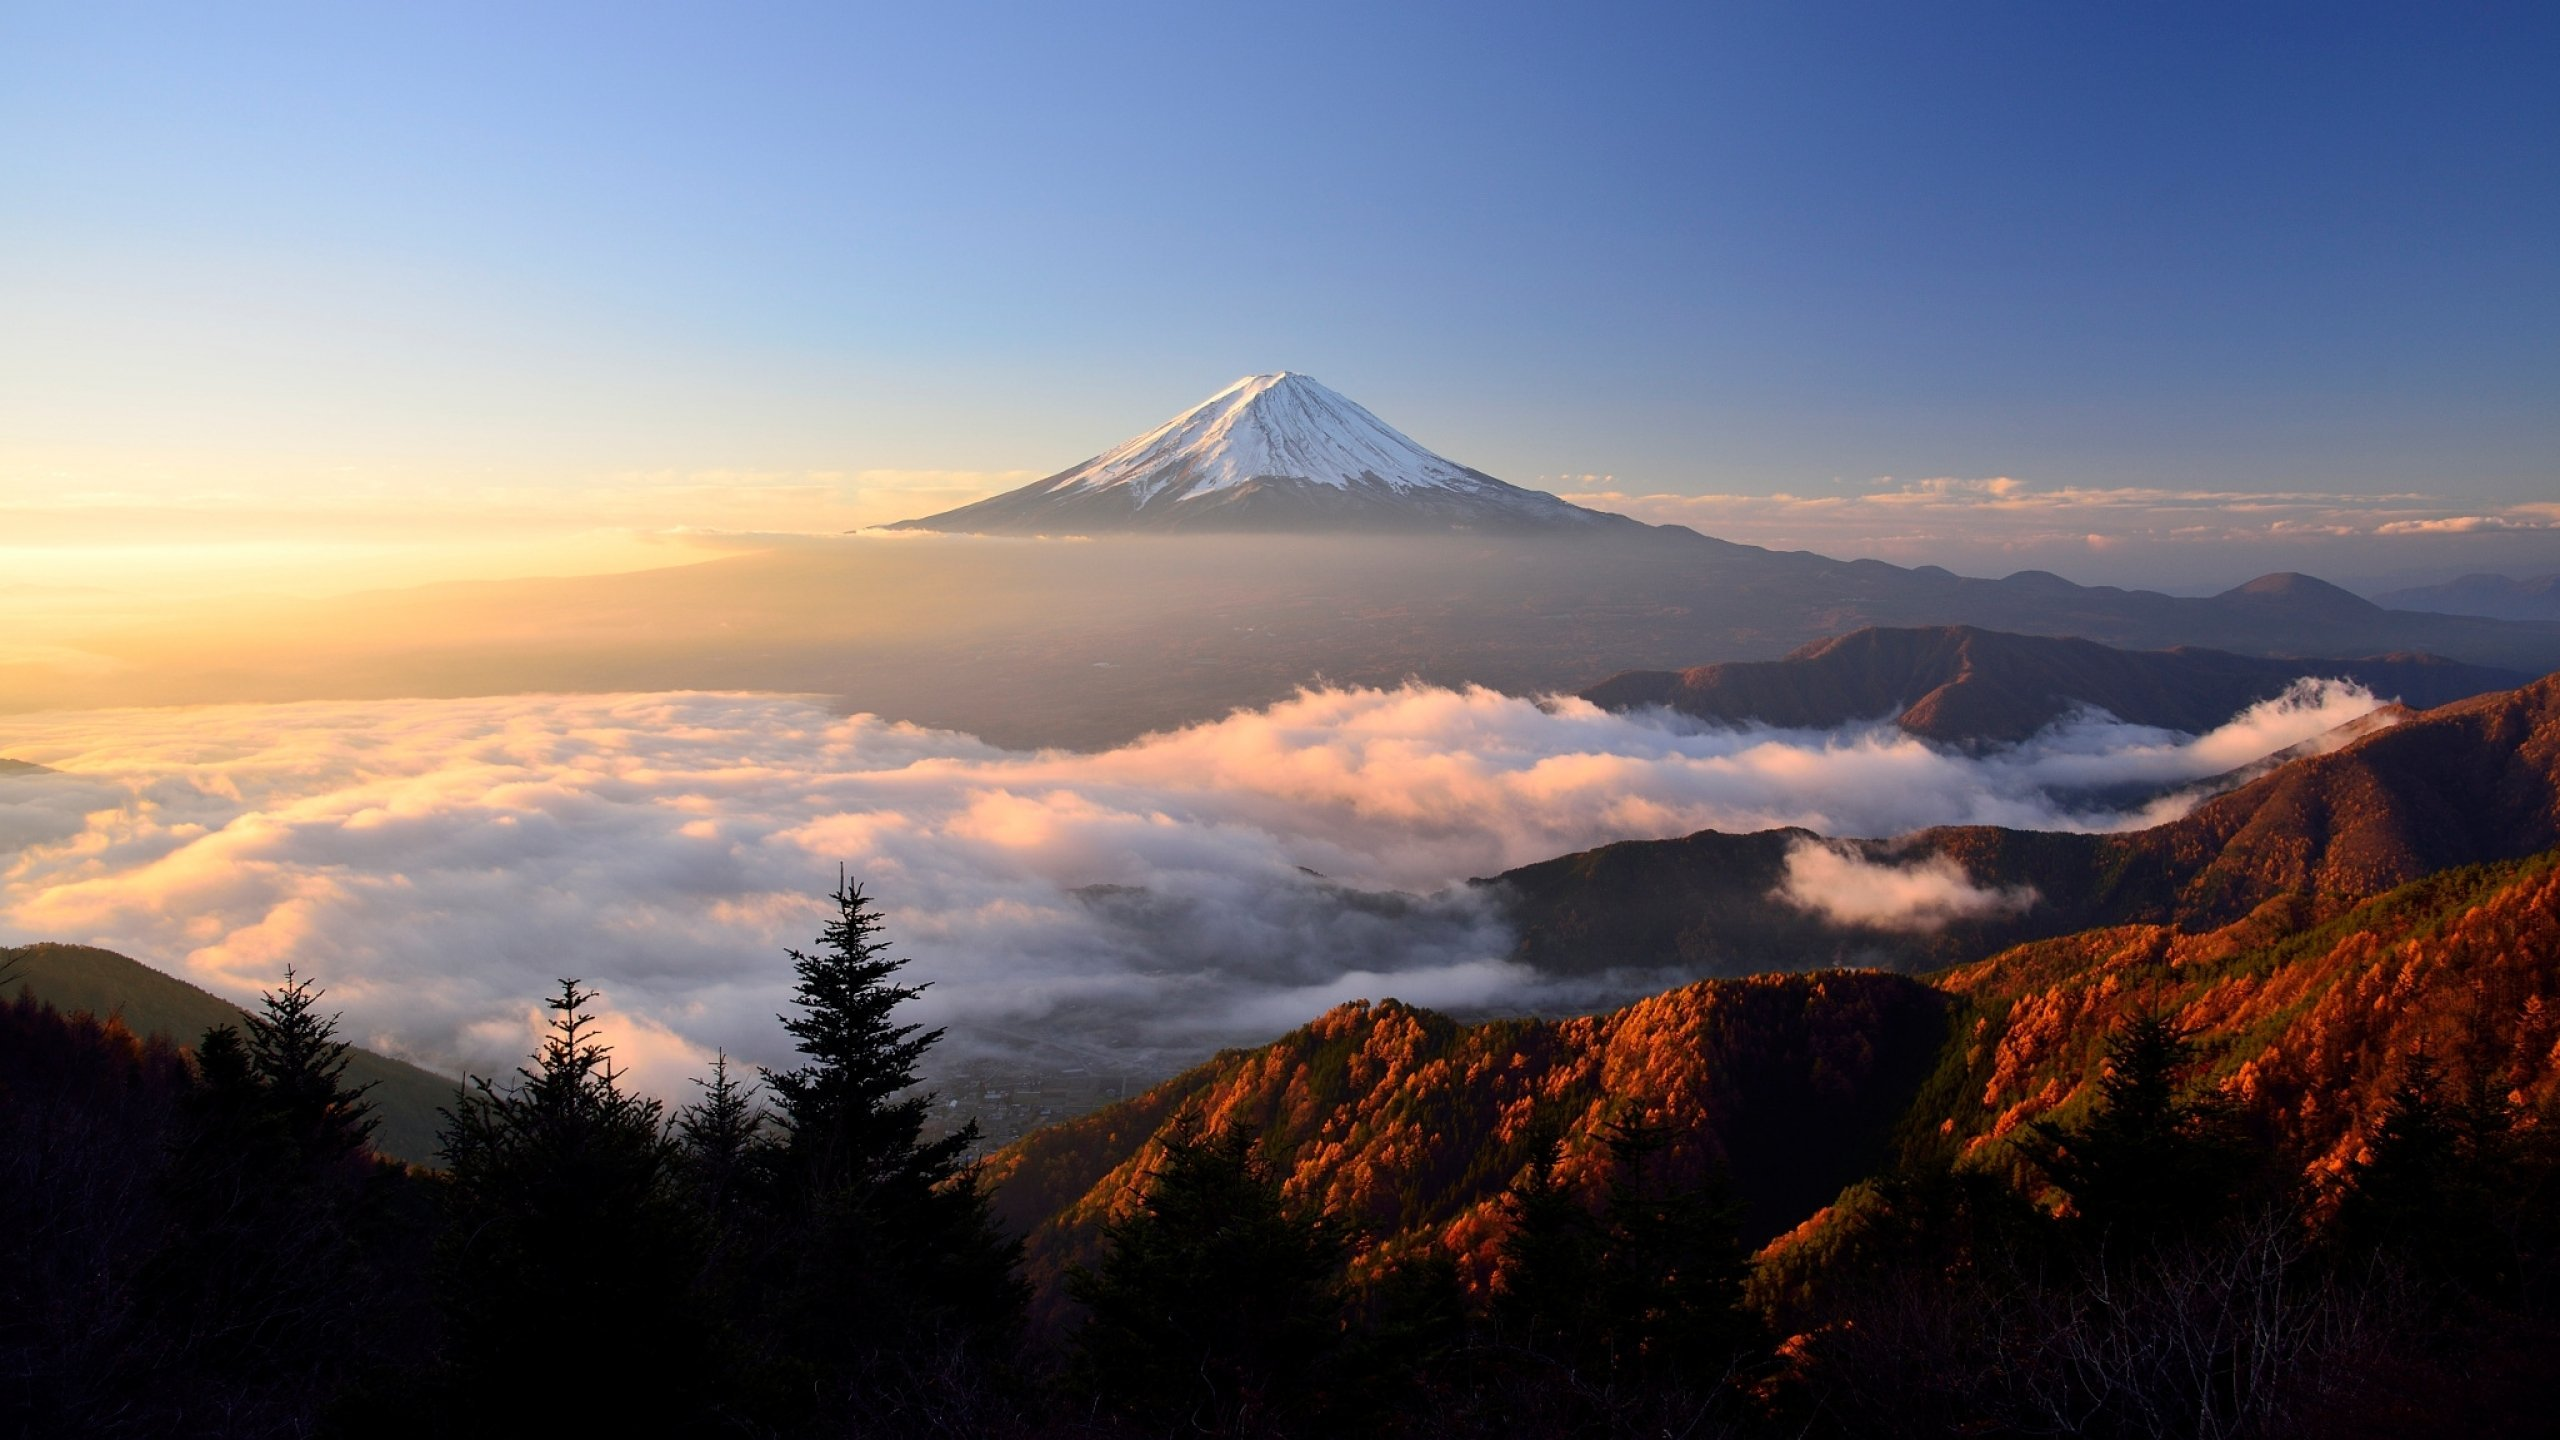 Mount Fuji Wallpaper Iphone Mount Fuji Hd Wallpaper